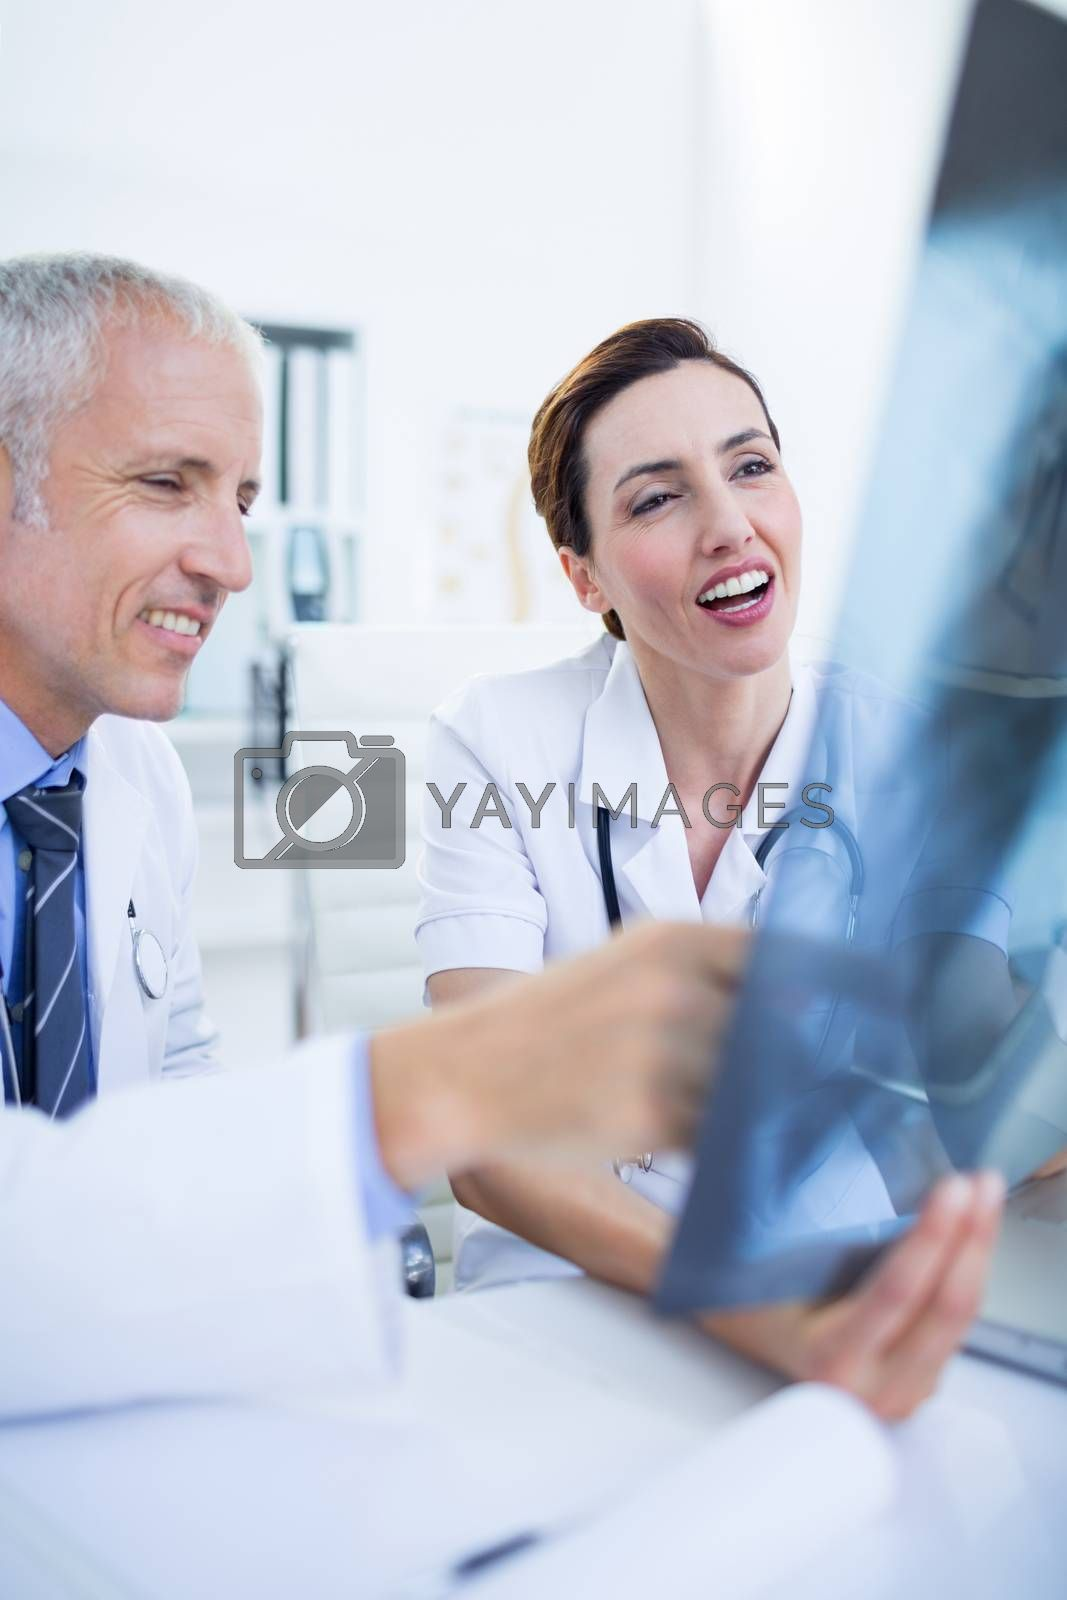 Royalty free image of Smiling medical colleagues examining x-ray together by Wavebreakmedia